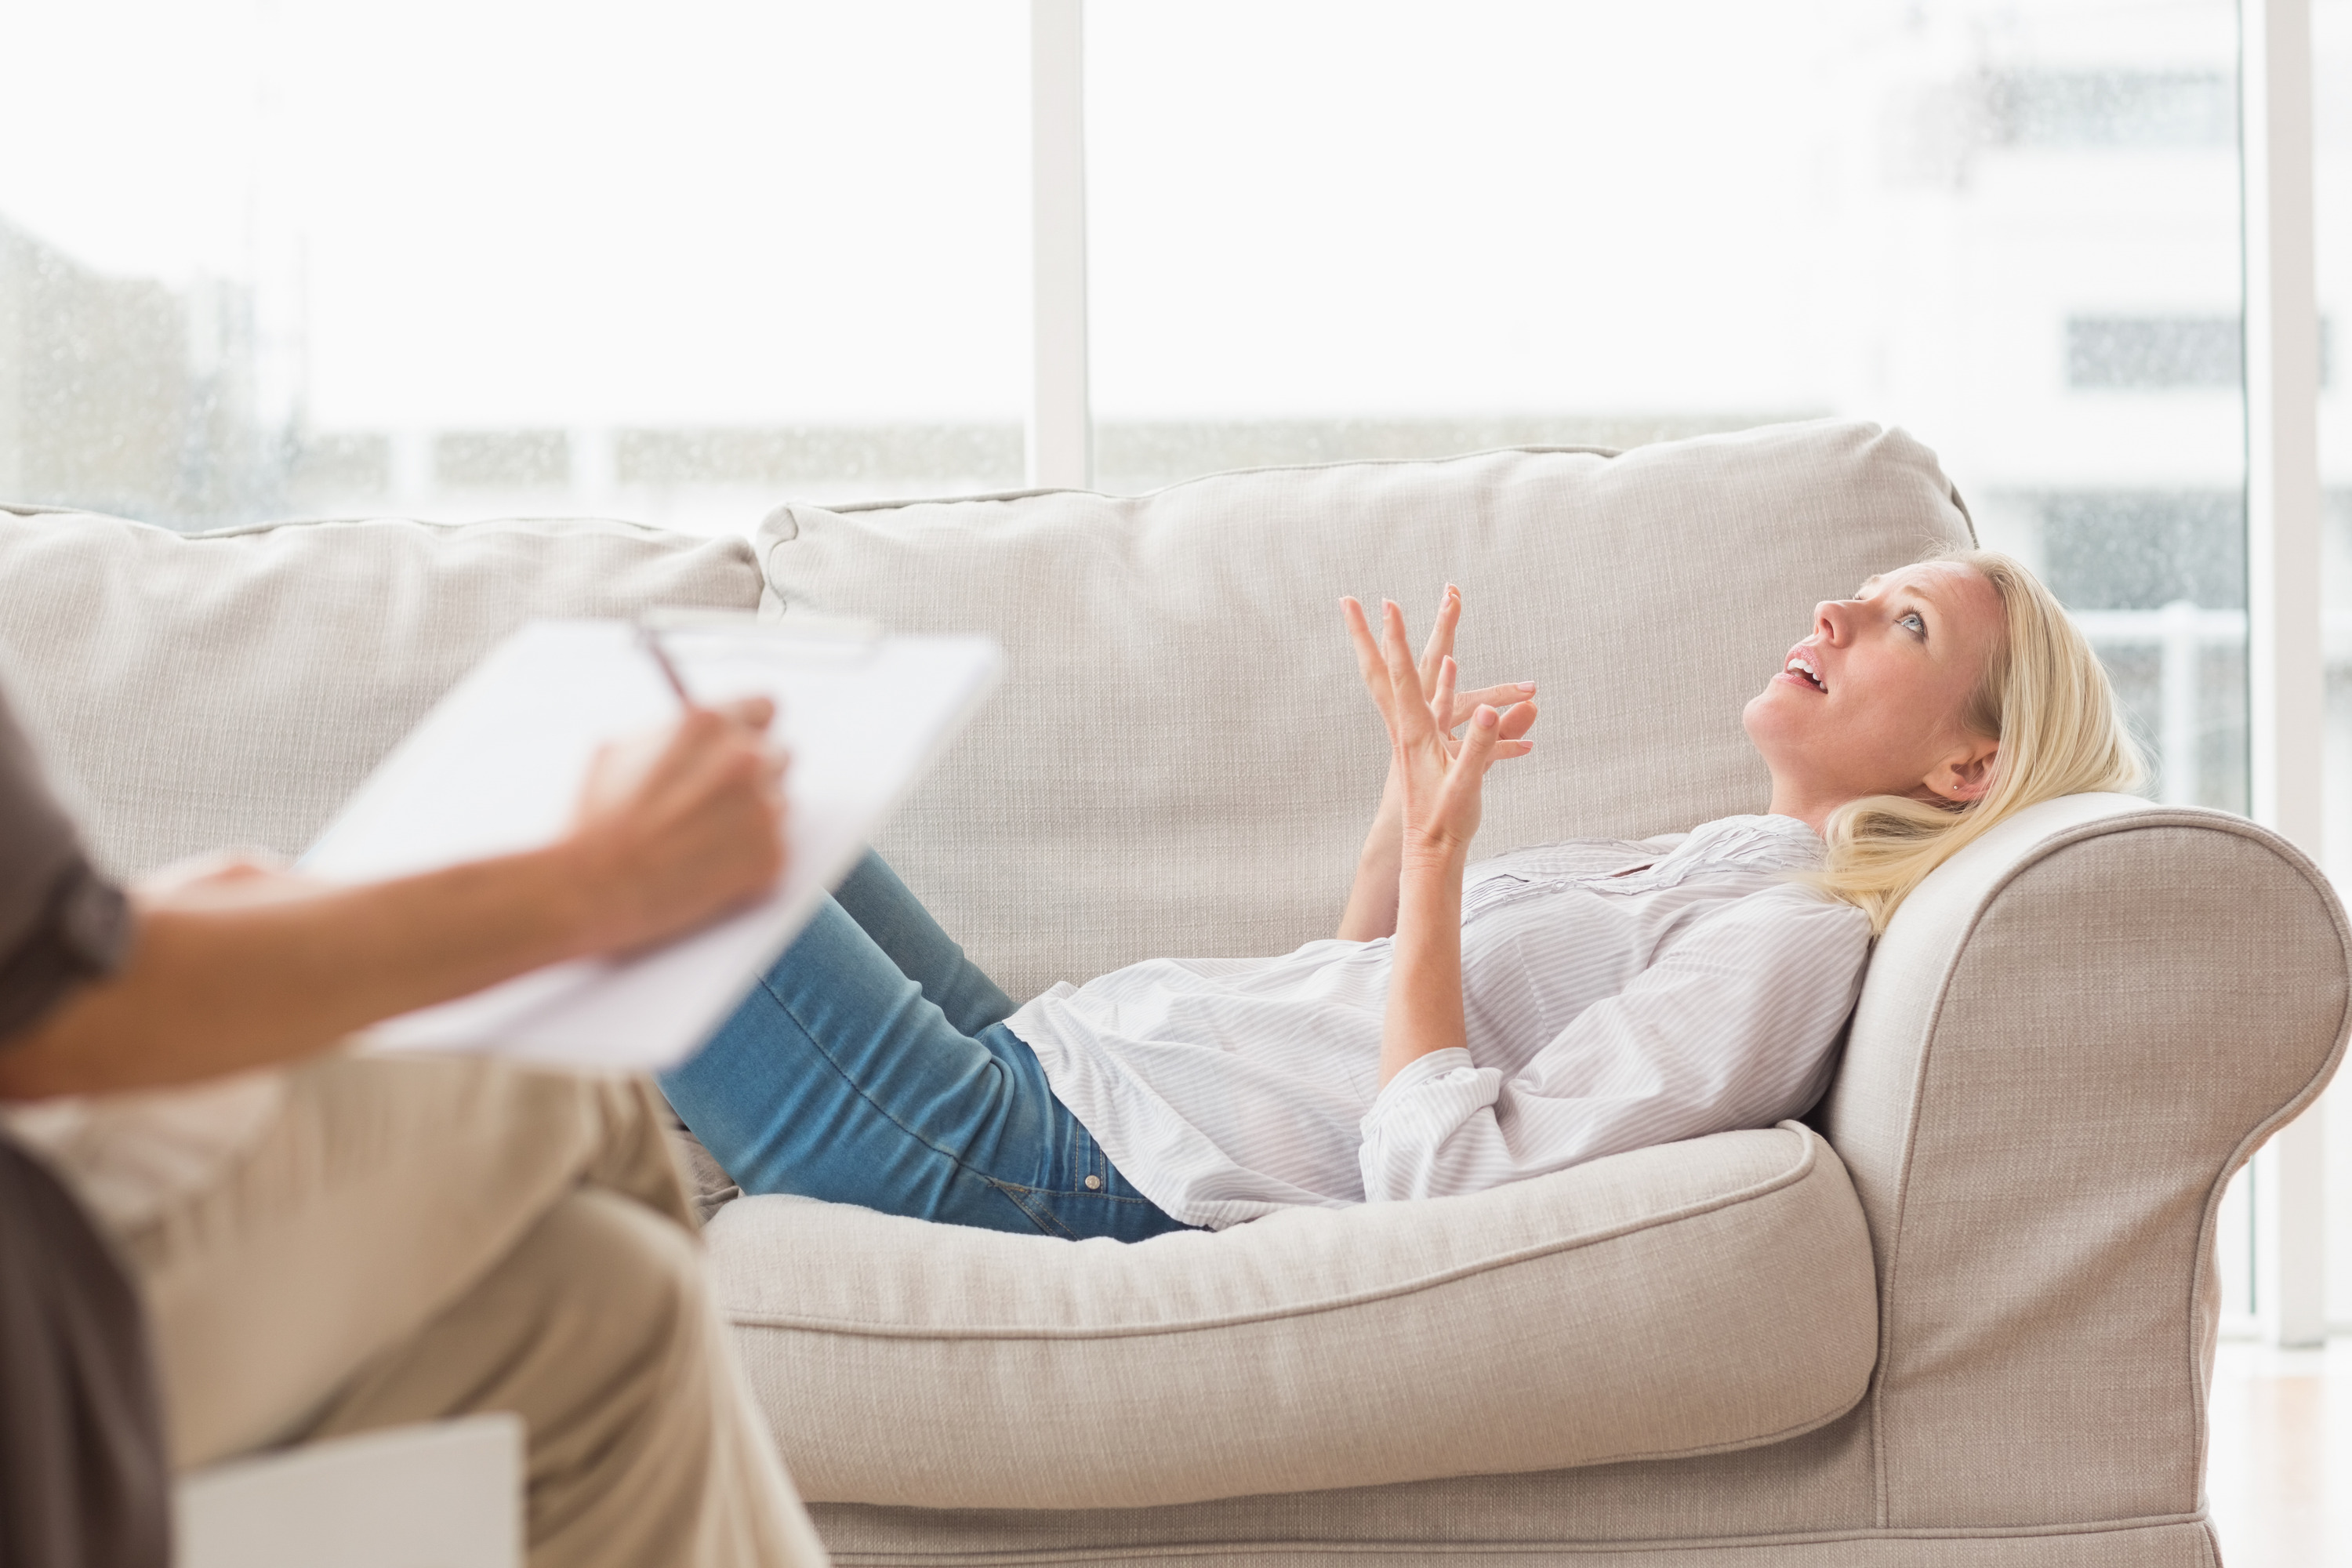 Depressed woman speaking to therapist while she is taking notes